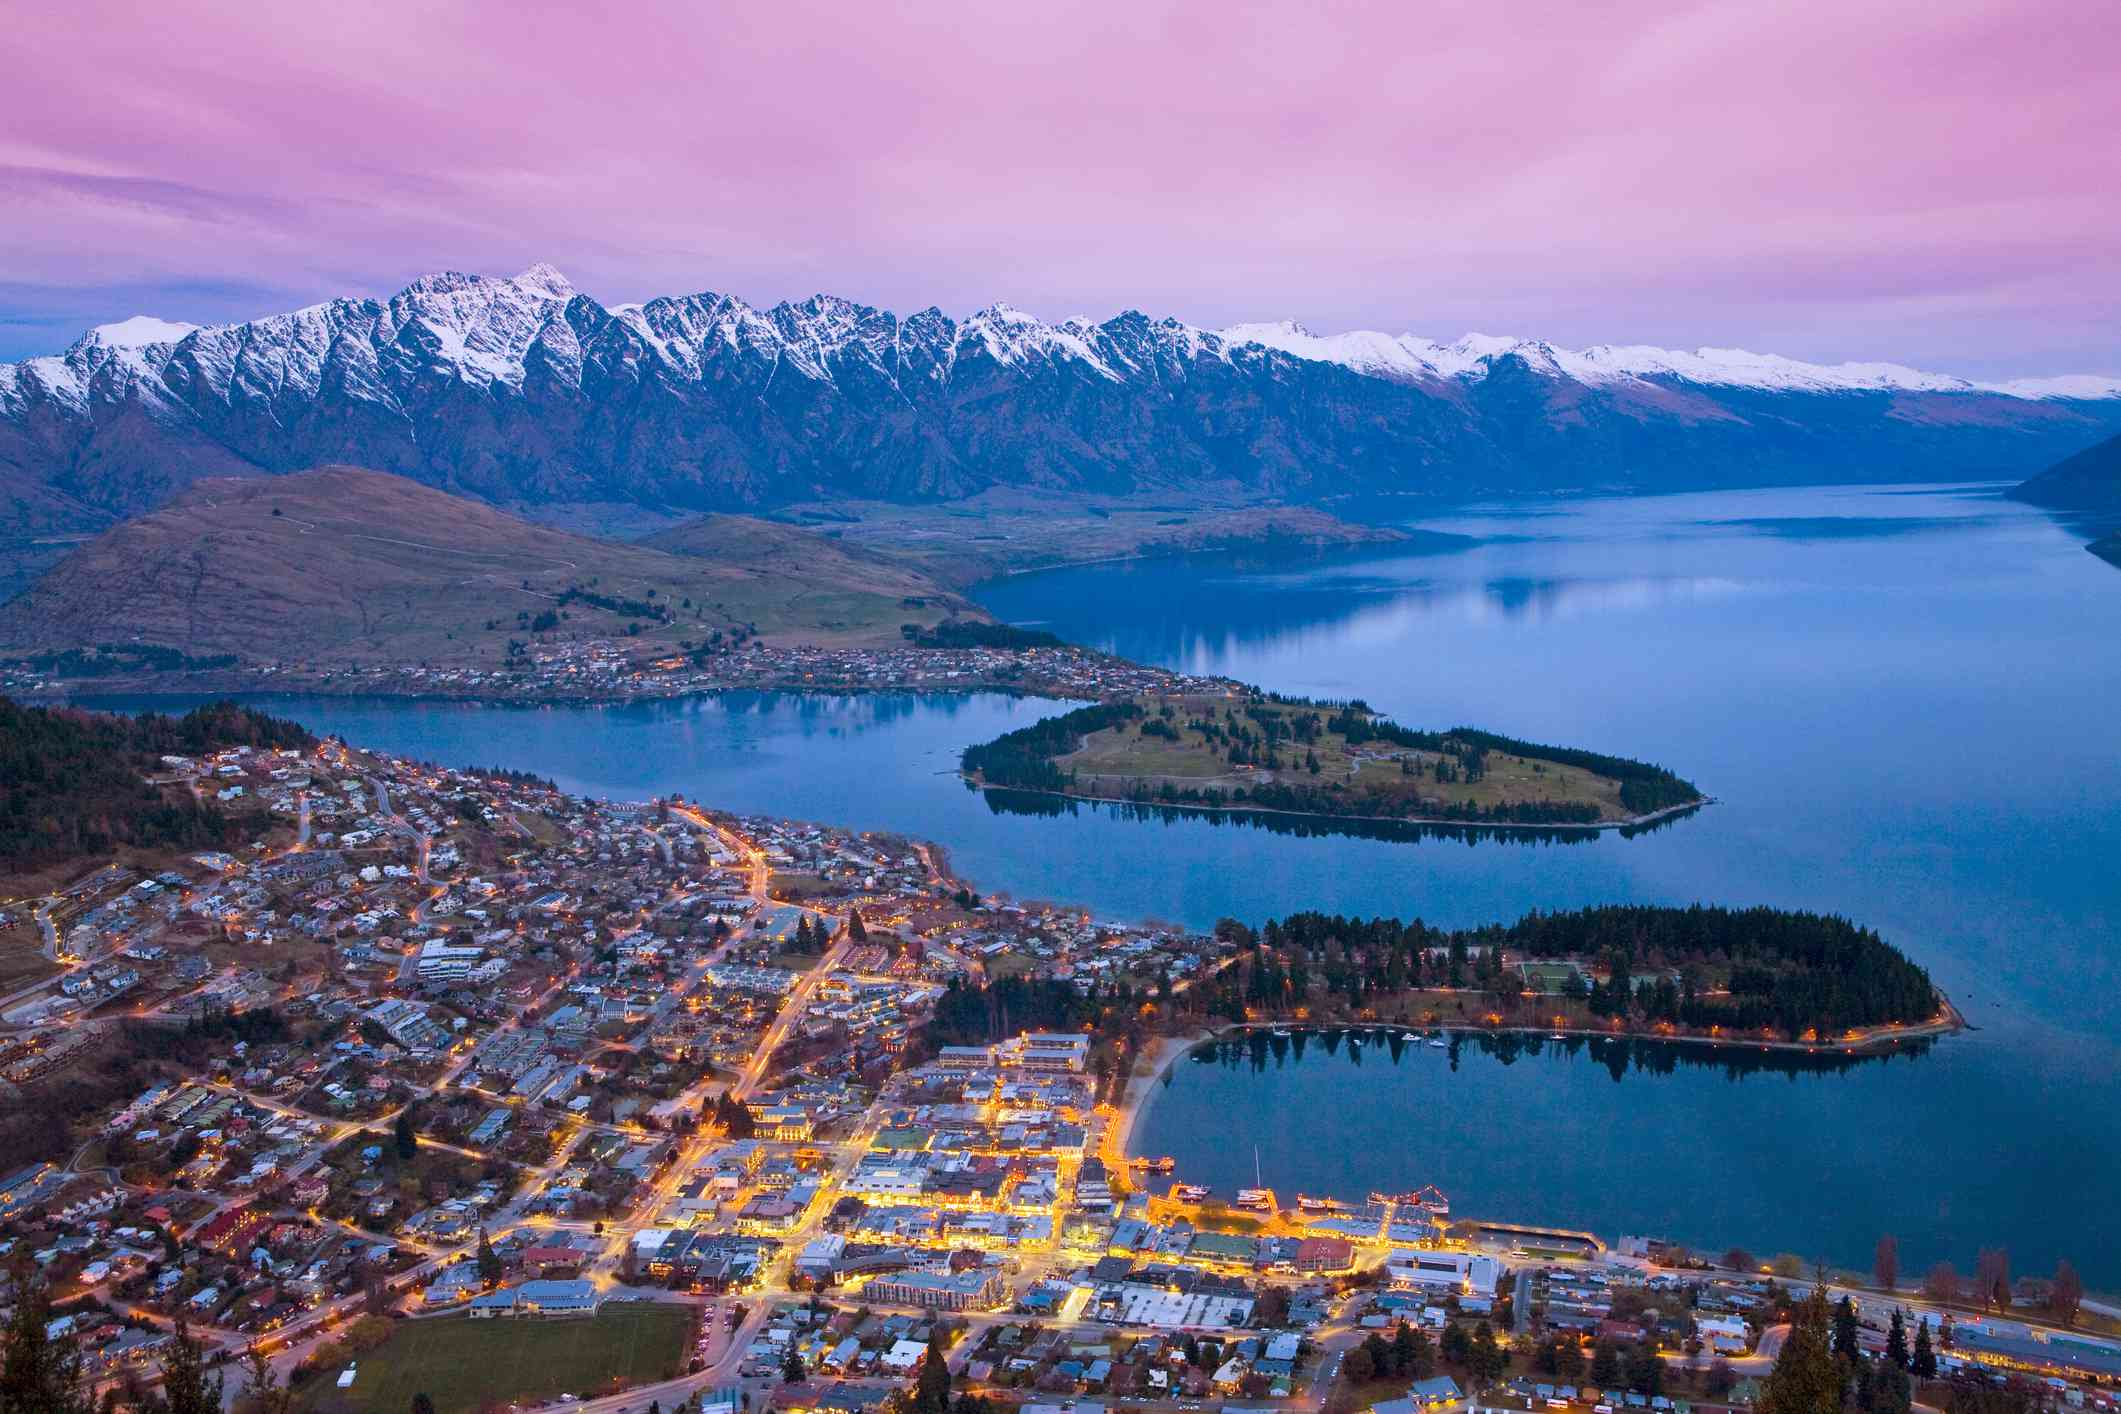 Queenstown and 'The Remarkables' mountain range